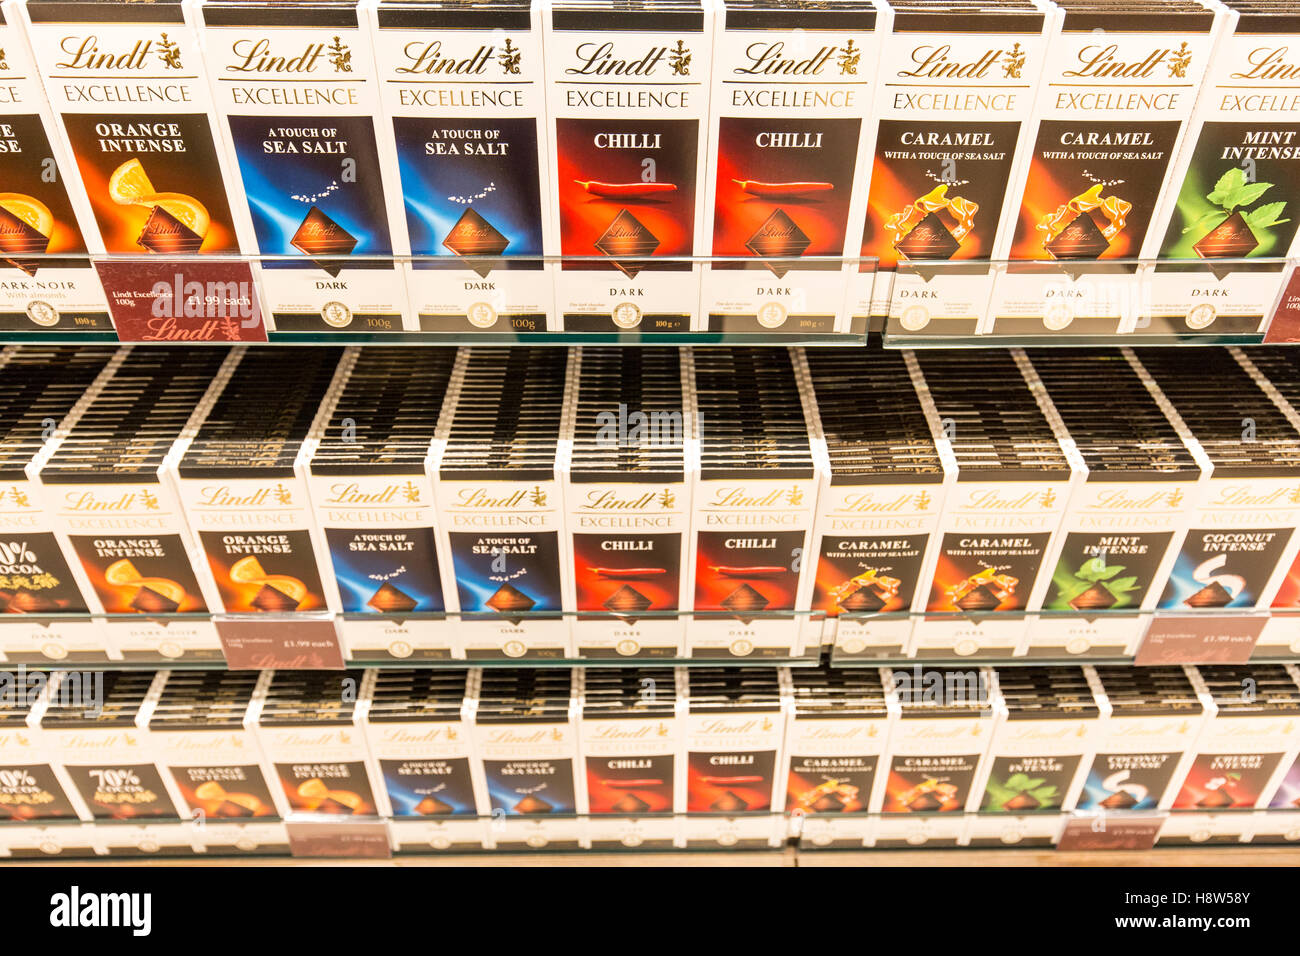 Lindt Chocolate store Stock Photo, Royalty Free Image: 125942795 ...